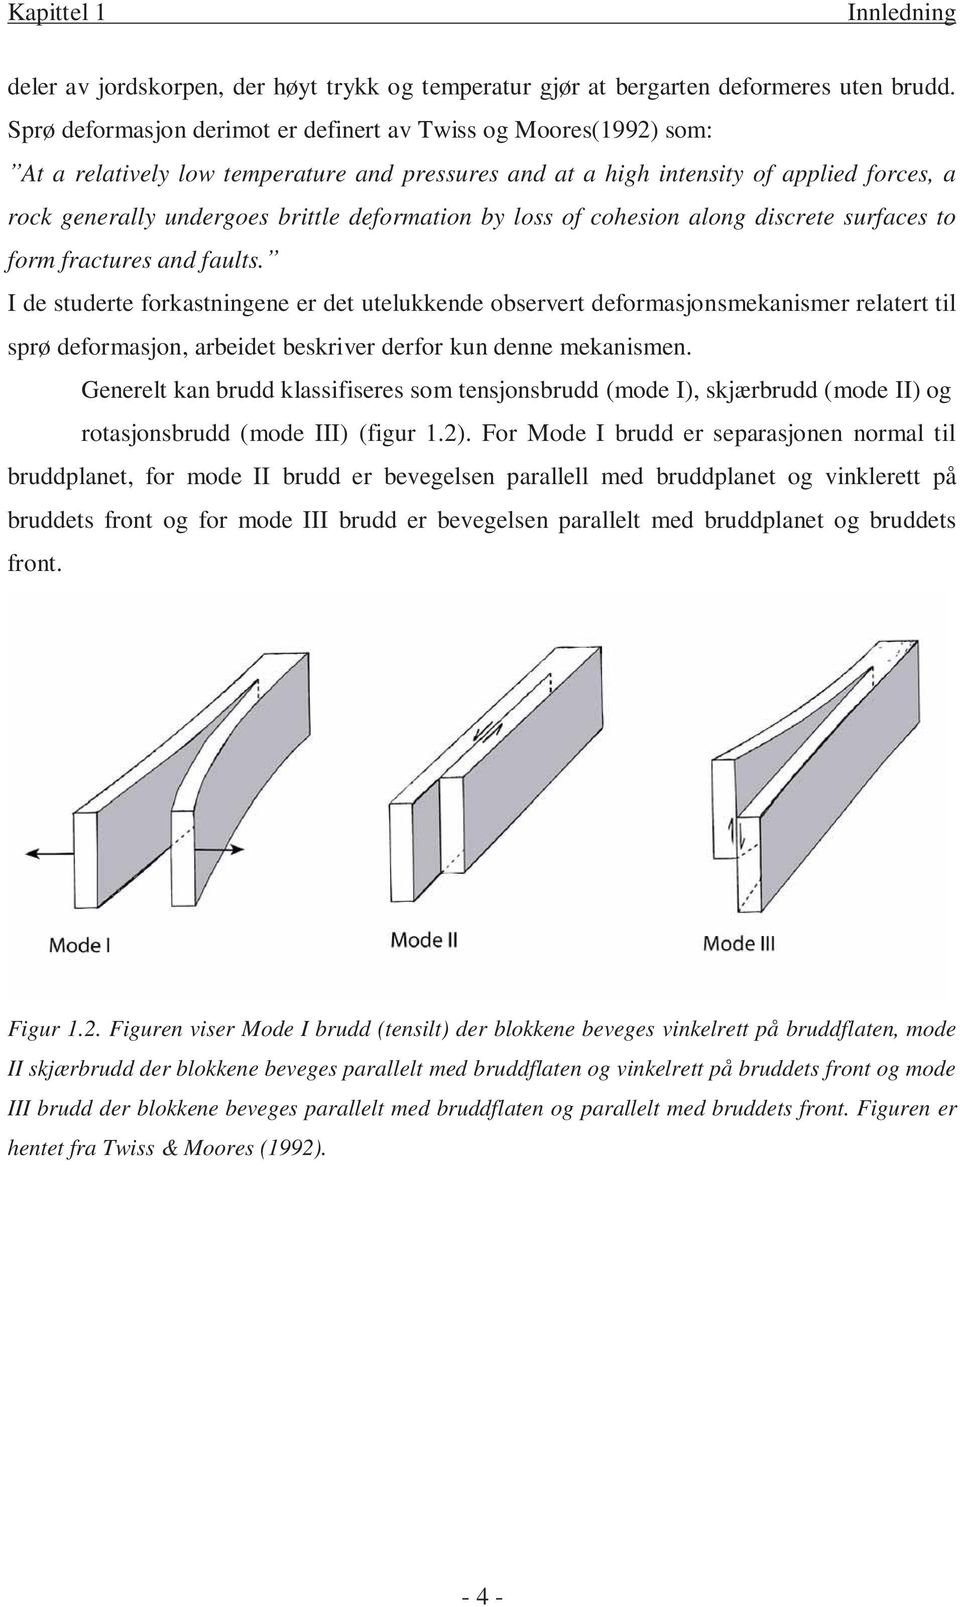 deformation by loss of cohesion along discrete surfaces to form fractures and faults.